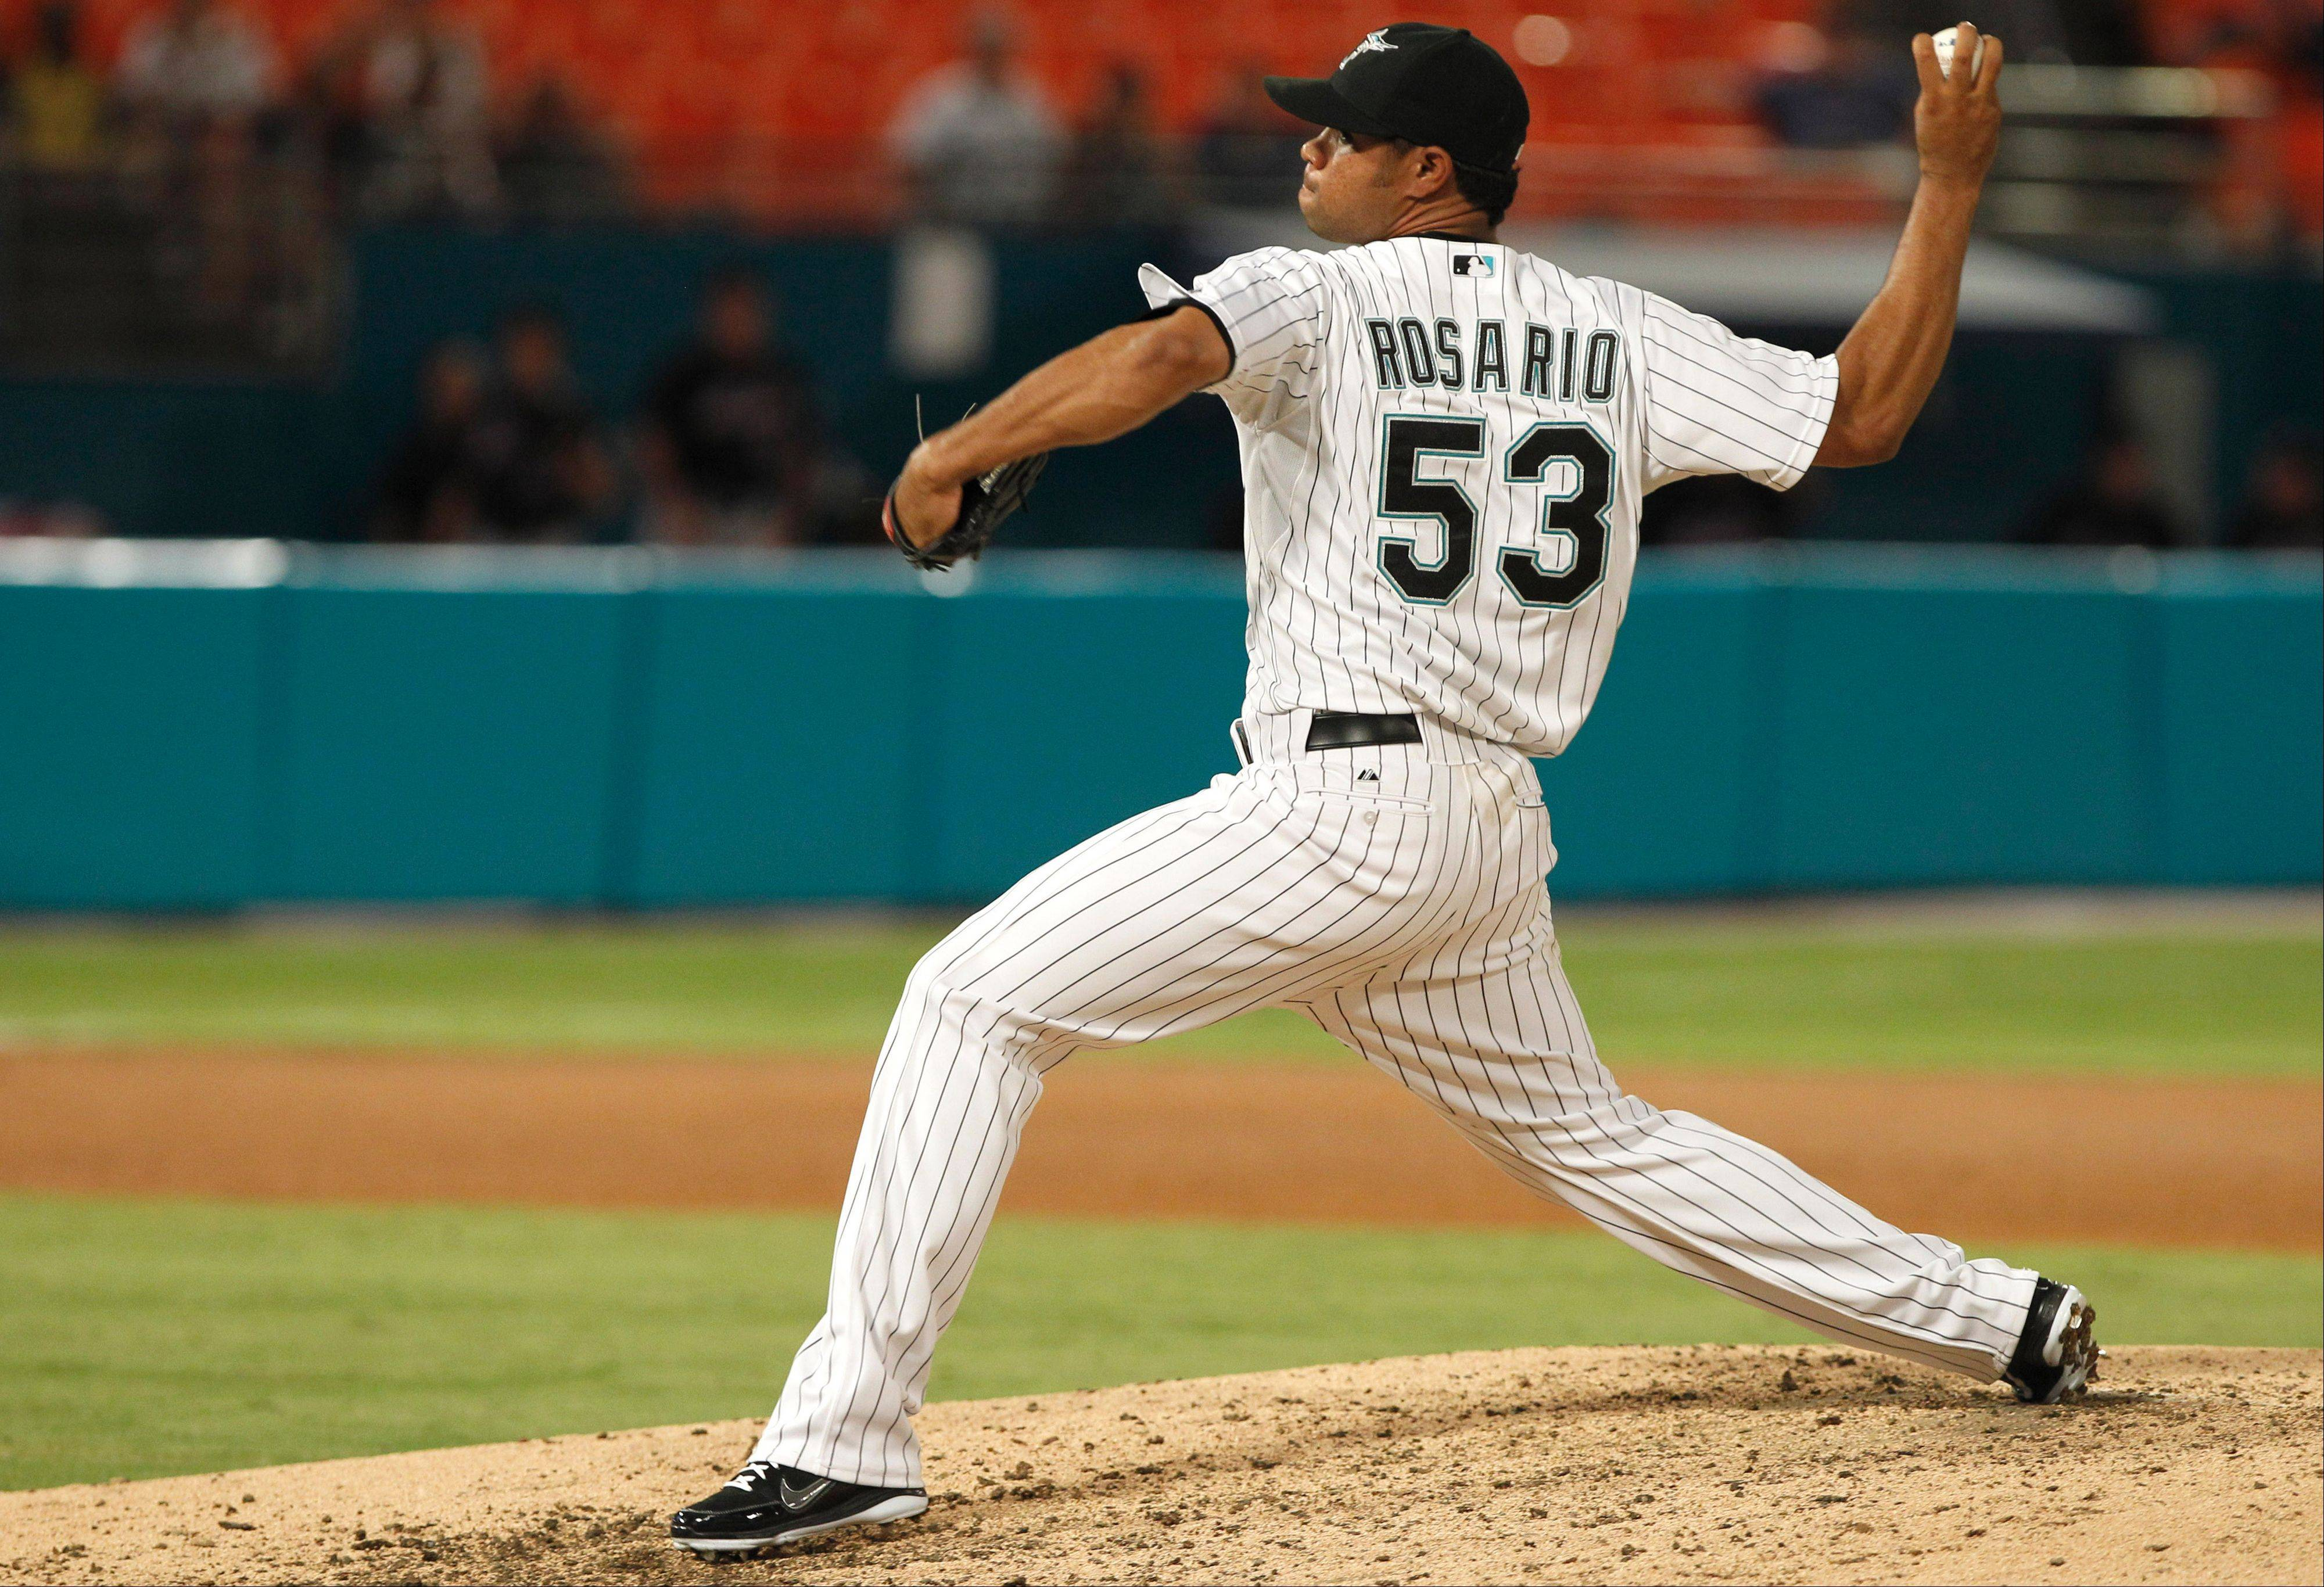 Relief pitcher Sandy Rosario, who last played for the Miami Marlins, was claimed by the Cubs off waivers from Boston.